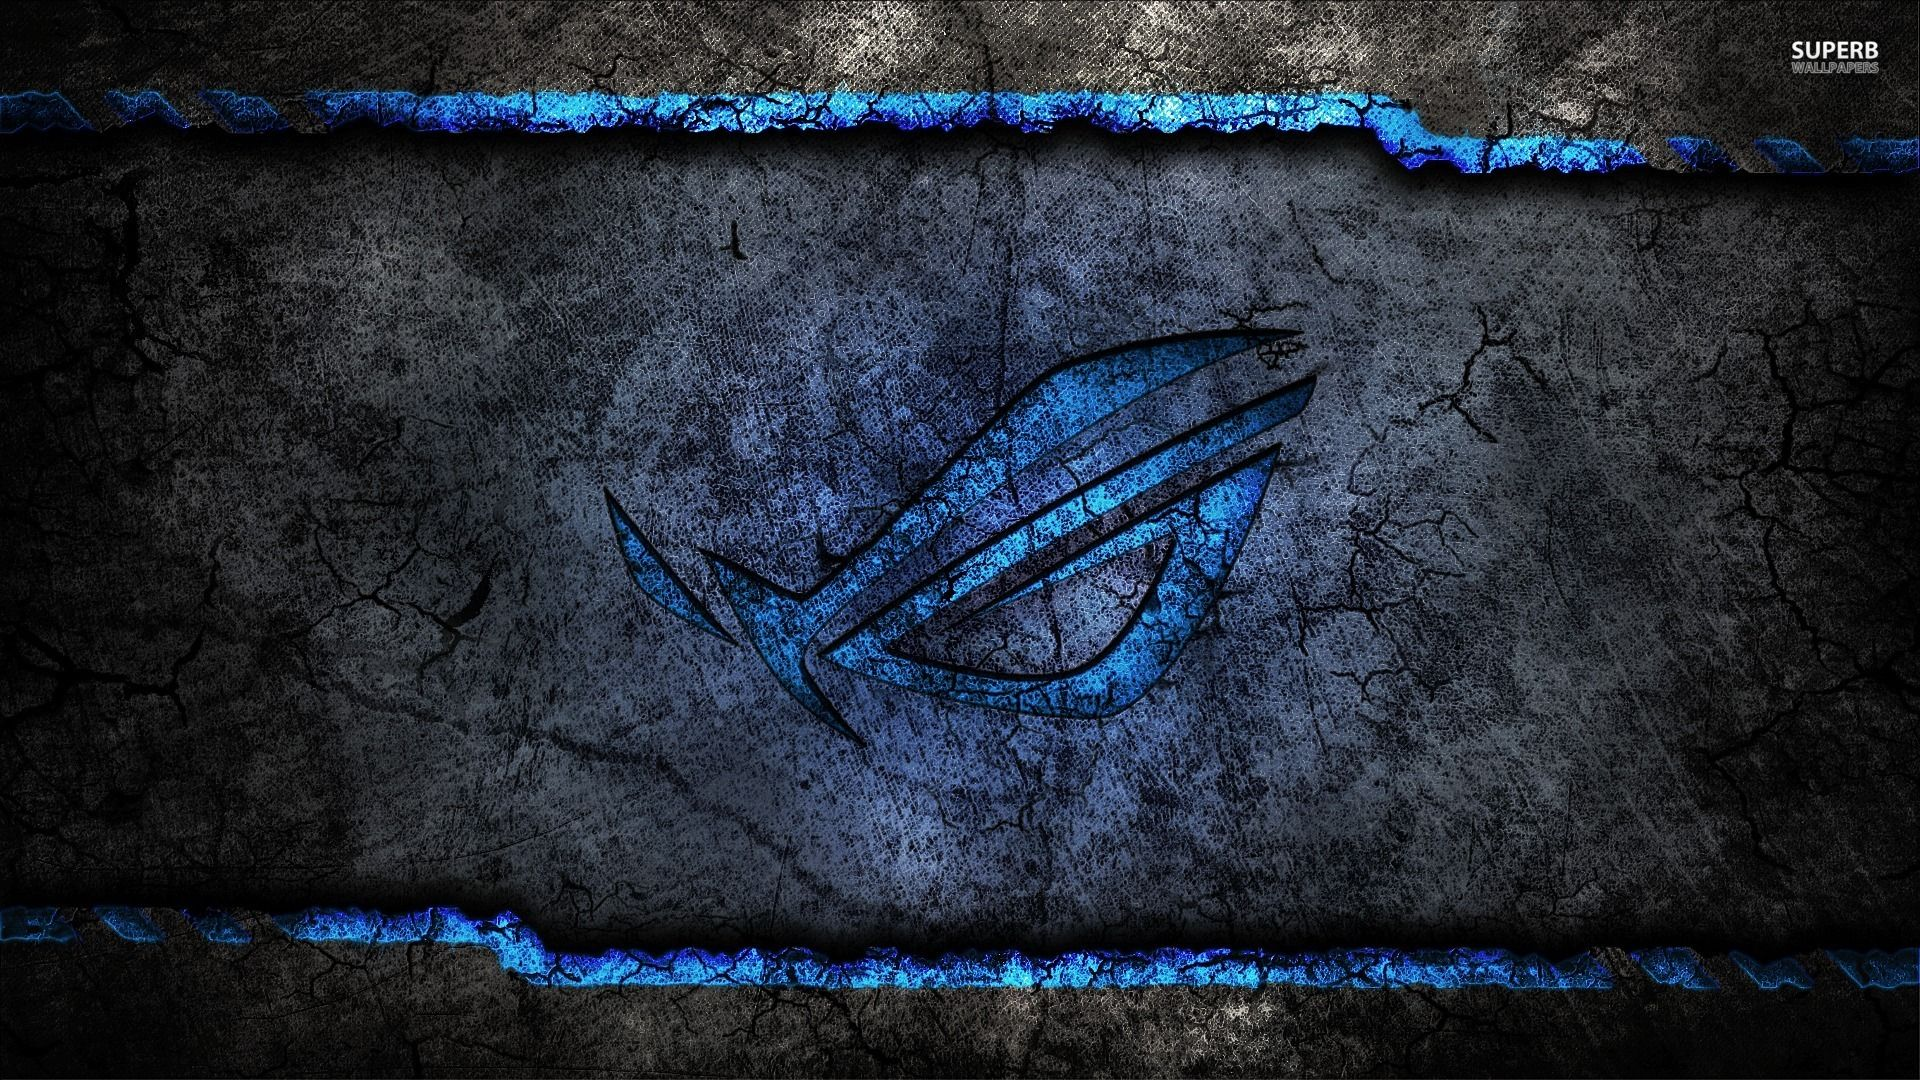 Dark Grey And Blue Asus Rog Wallpaper Id 1231 Download Page Latar Belakang Seni Wallpaper Ponsel